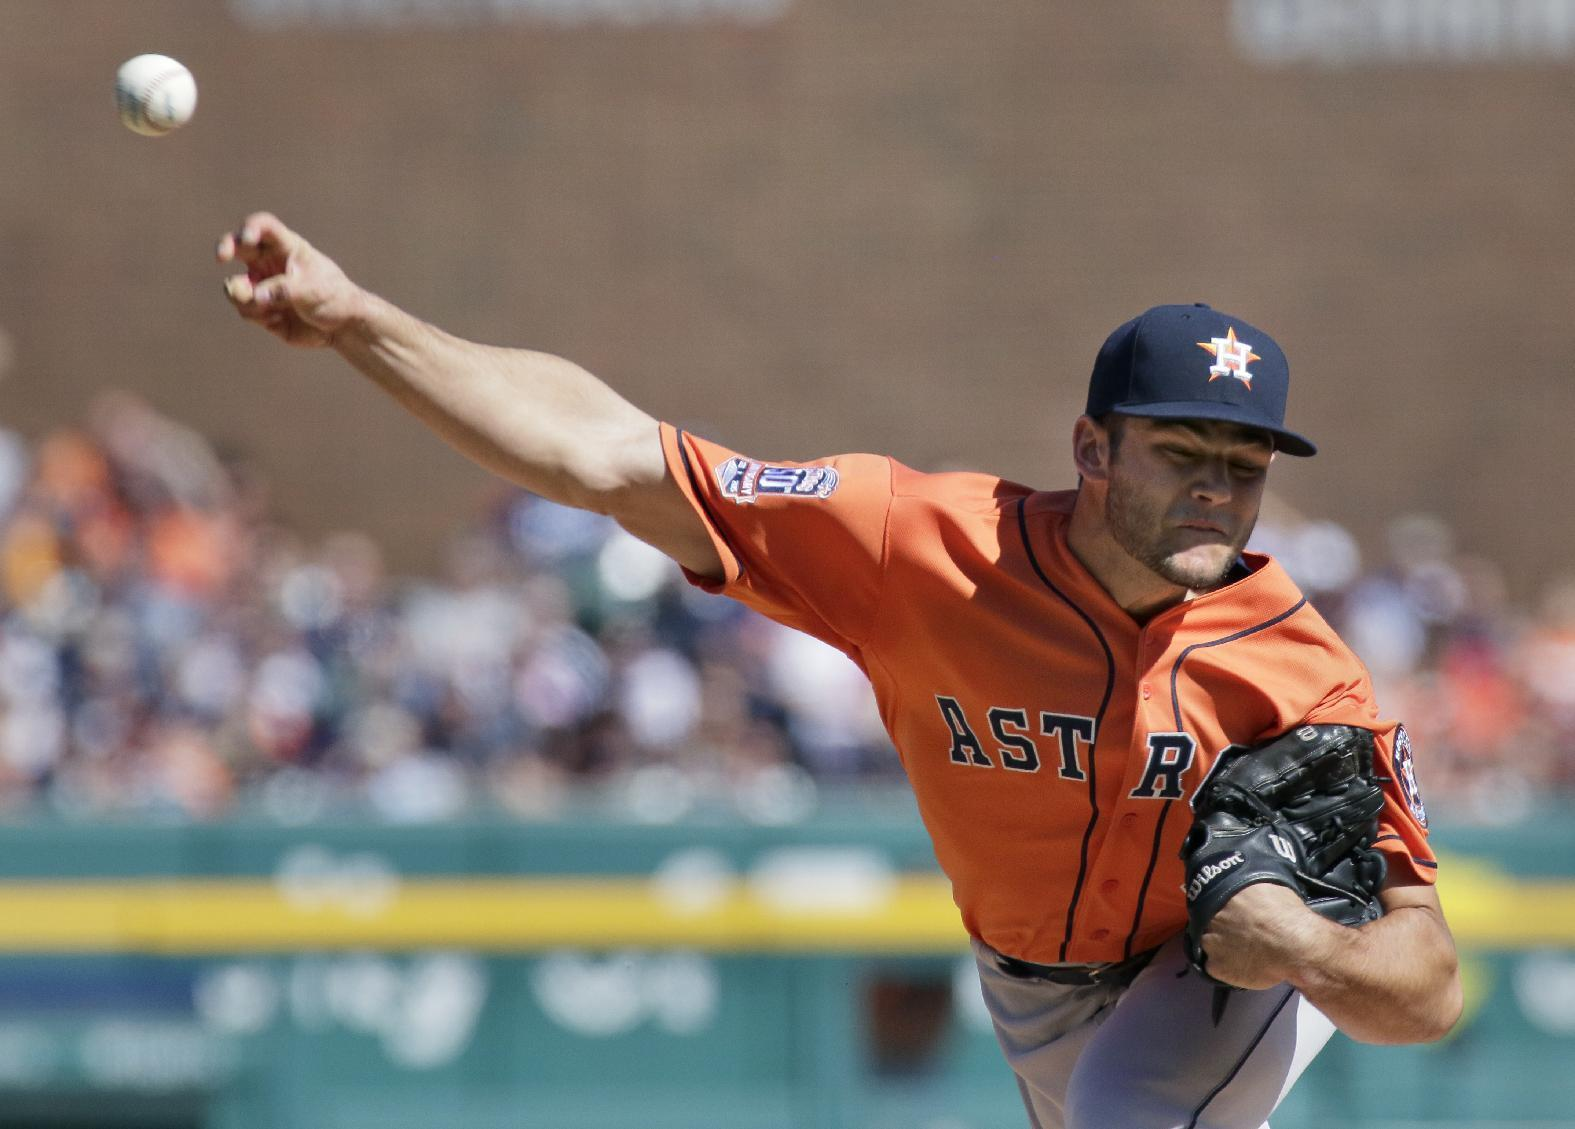 Astros turn 1st triple play since 2004, beat Tigers